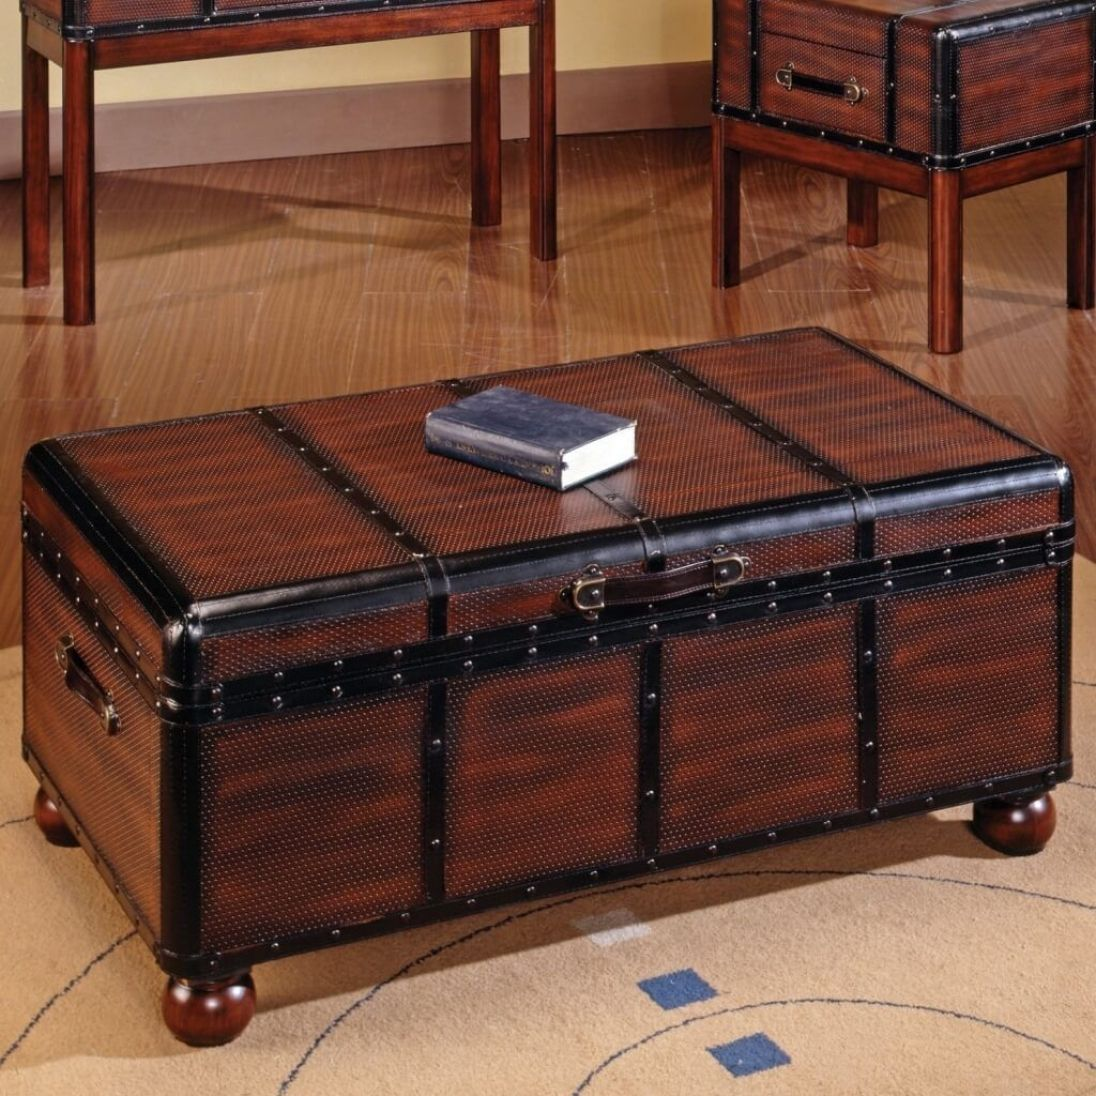 Square Coffee Table With Baskets Underneath Interior Paint Color Schemes Check More At Http Www Buzzfold Coffee Table Trunk Coffee Table Chest Coffee Table [ 1096 x 1096 Pixel ]